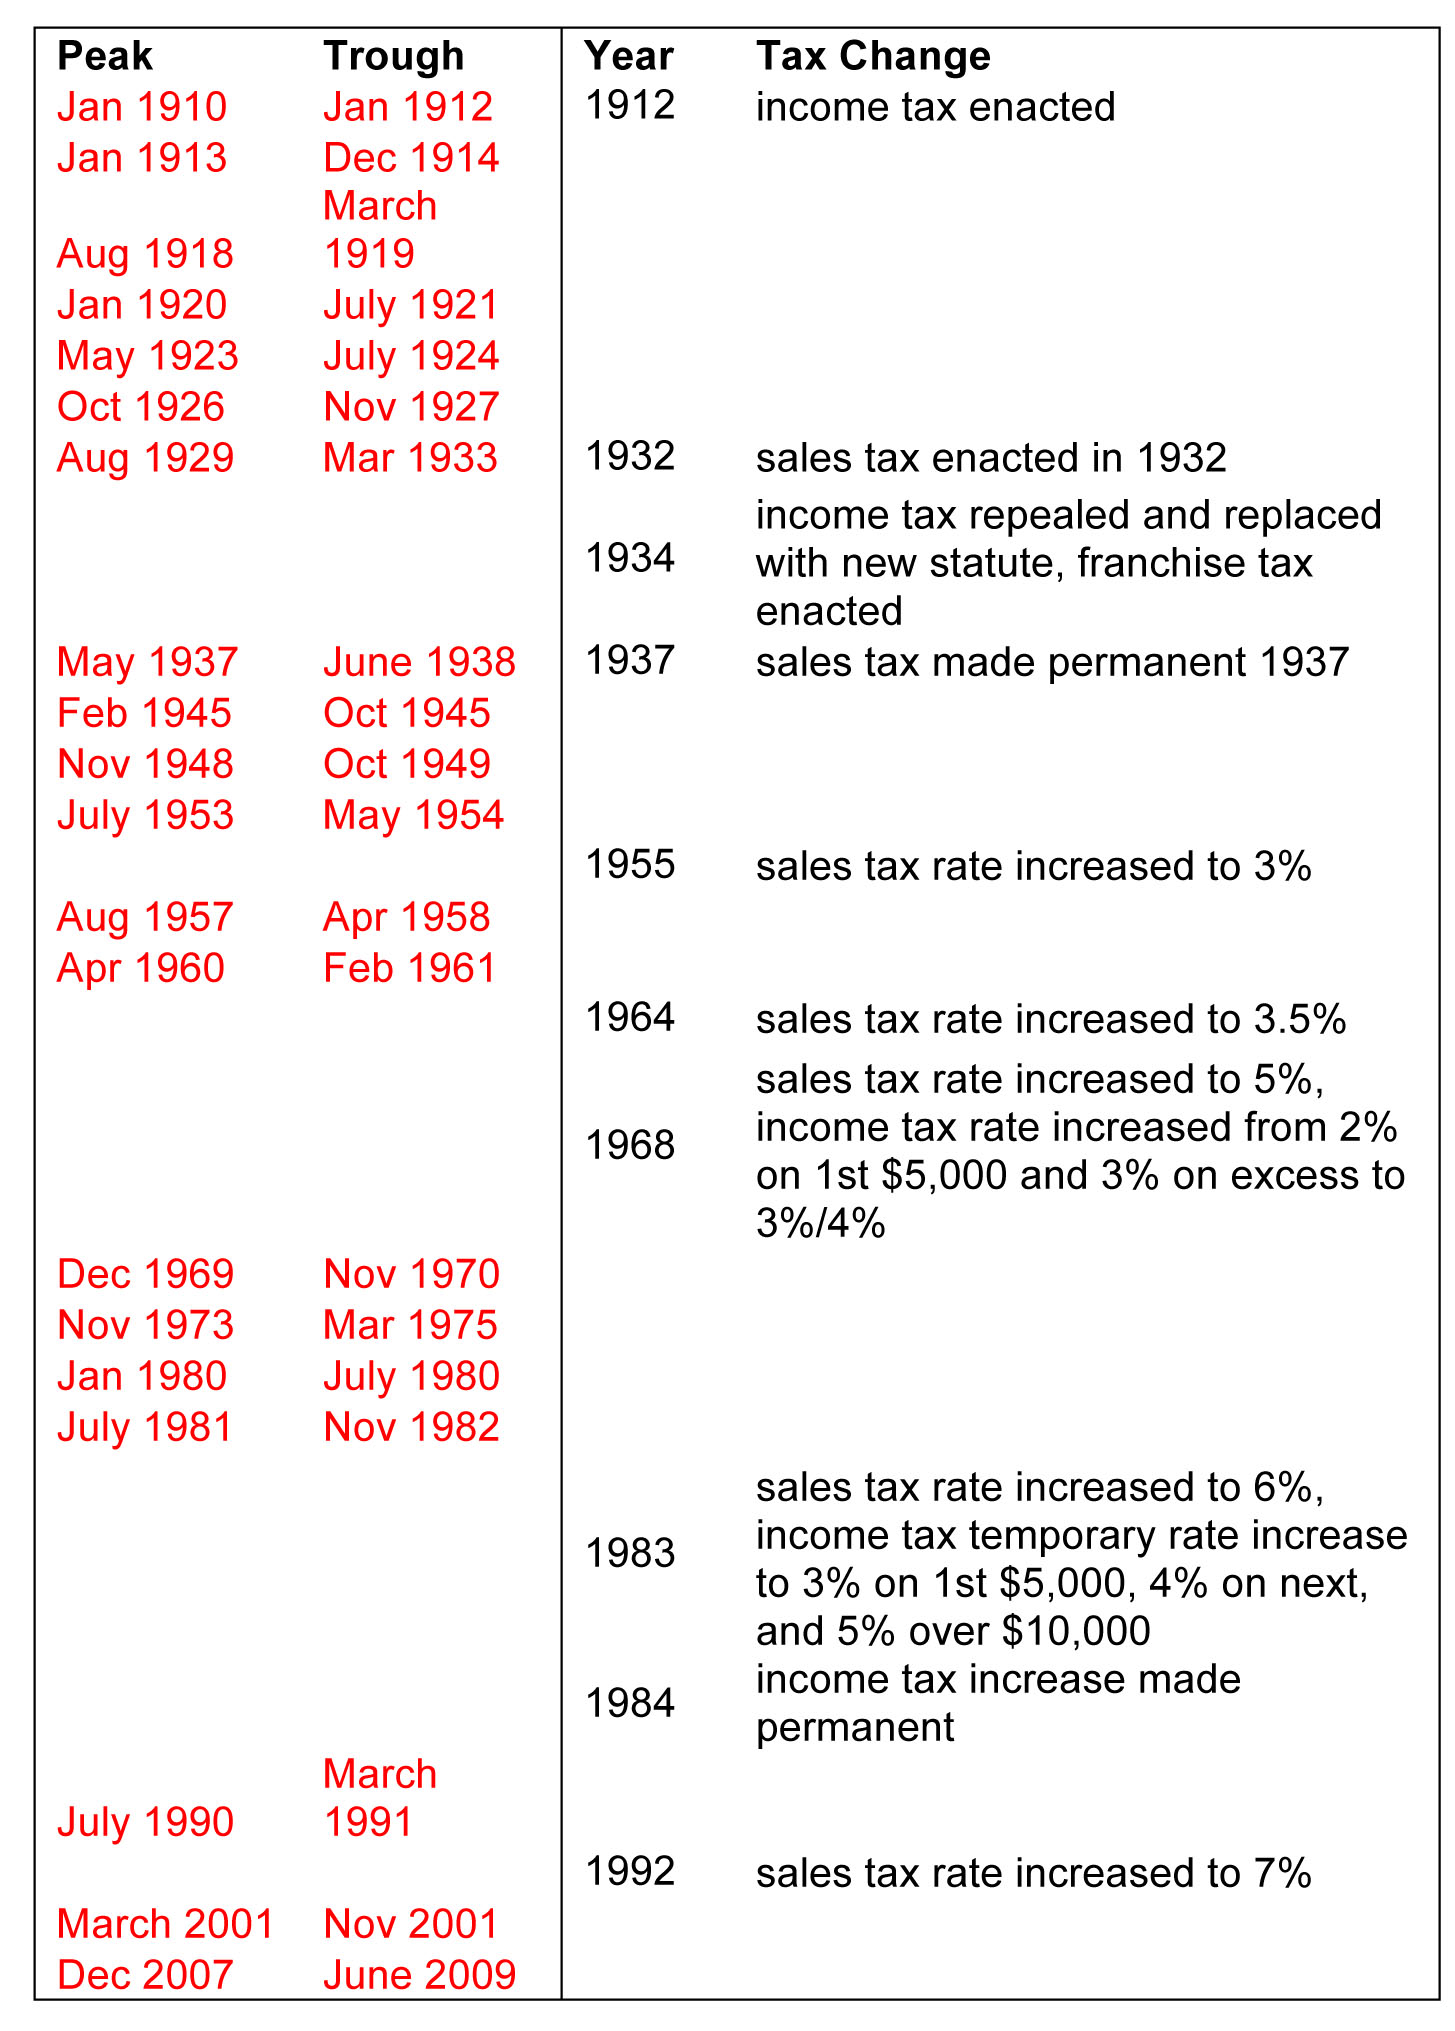 Microsoft Word - A Little Mississippi Tax History blog1.docx